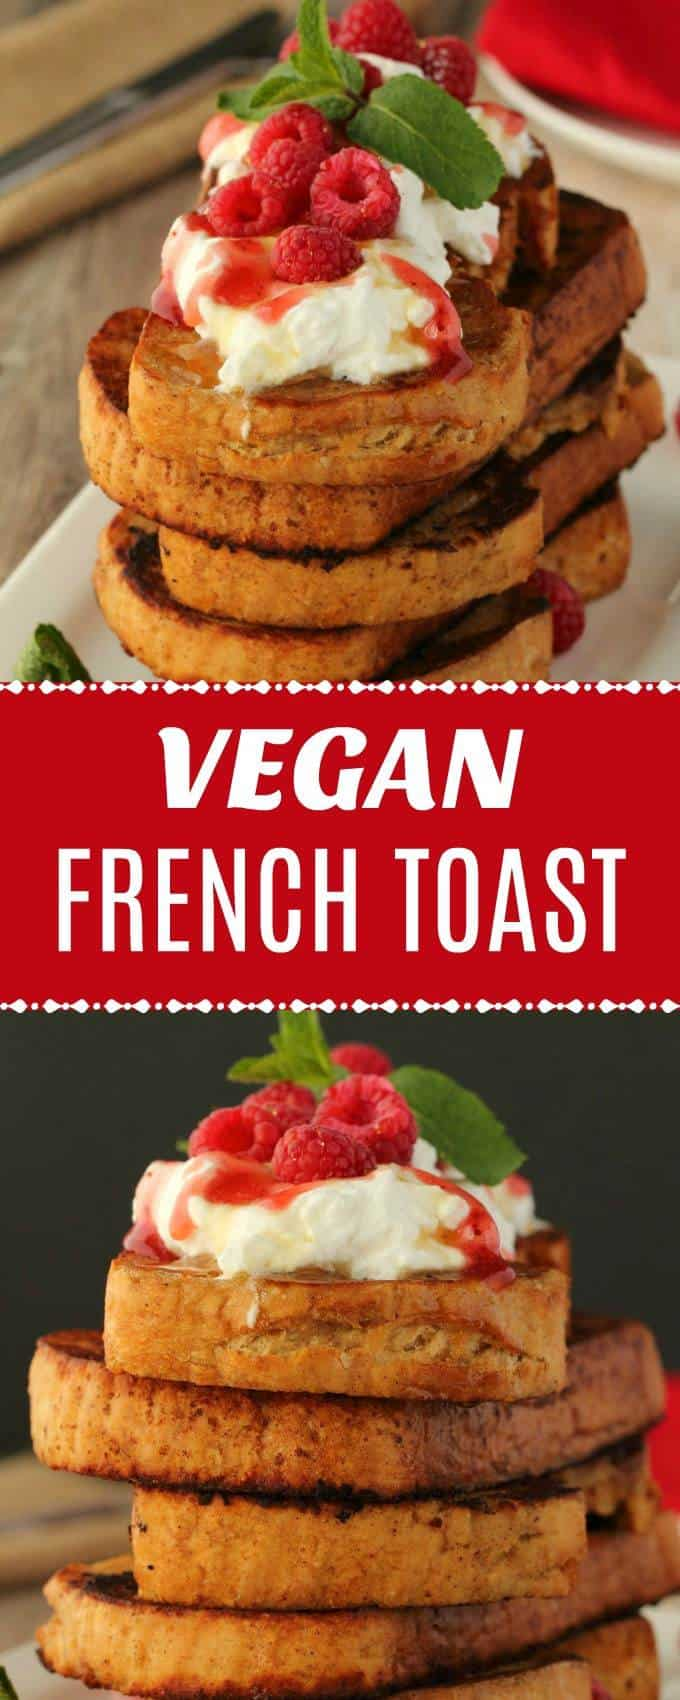 Vegan french toast recipe that is crispy on the outside, soft on the inside and makes a perfect breakfast served as is or with syrup or jam and vegan cream! | lovingitvegan.com